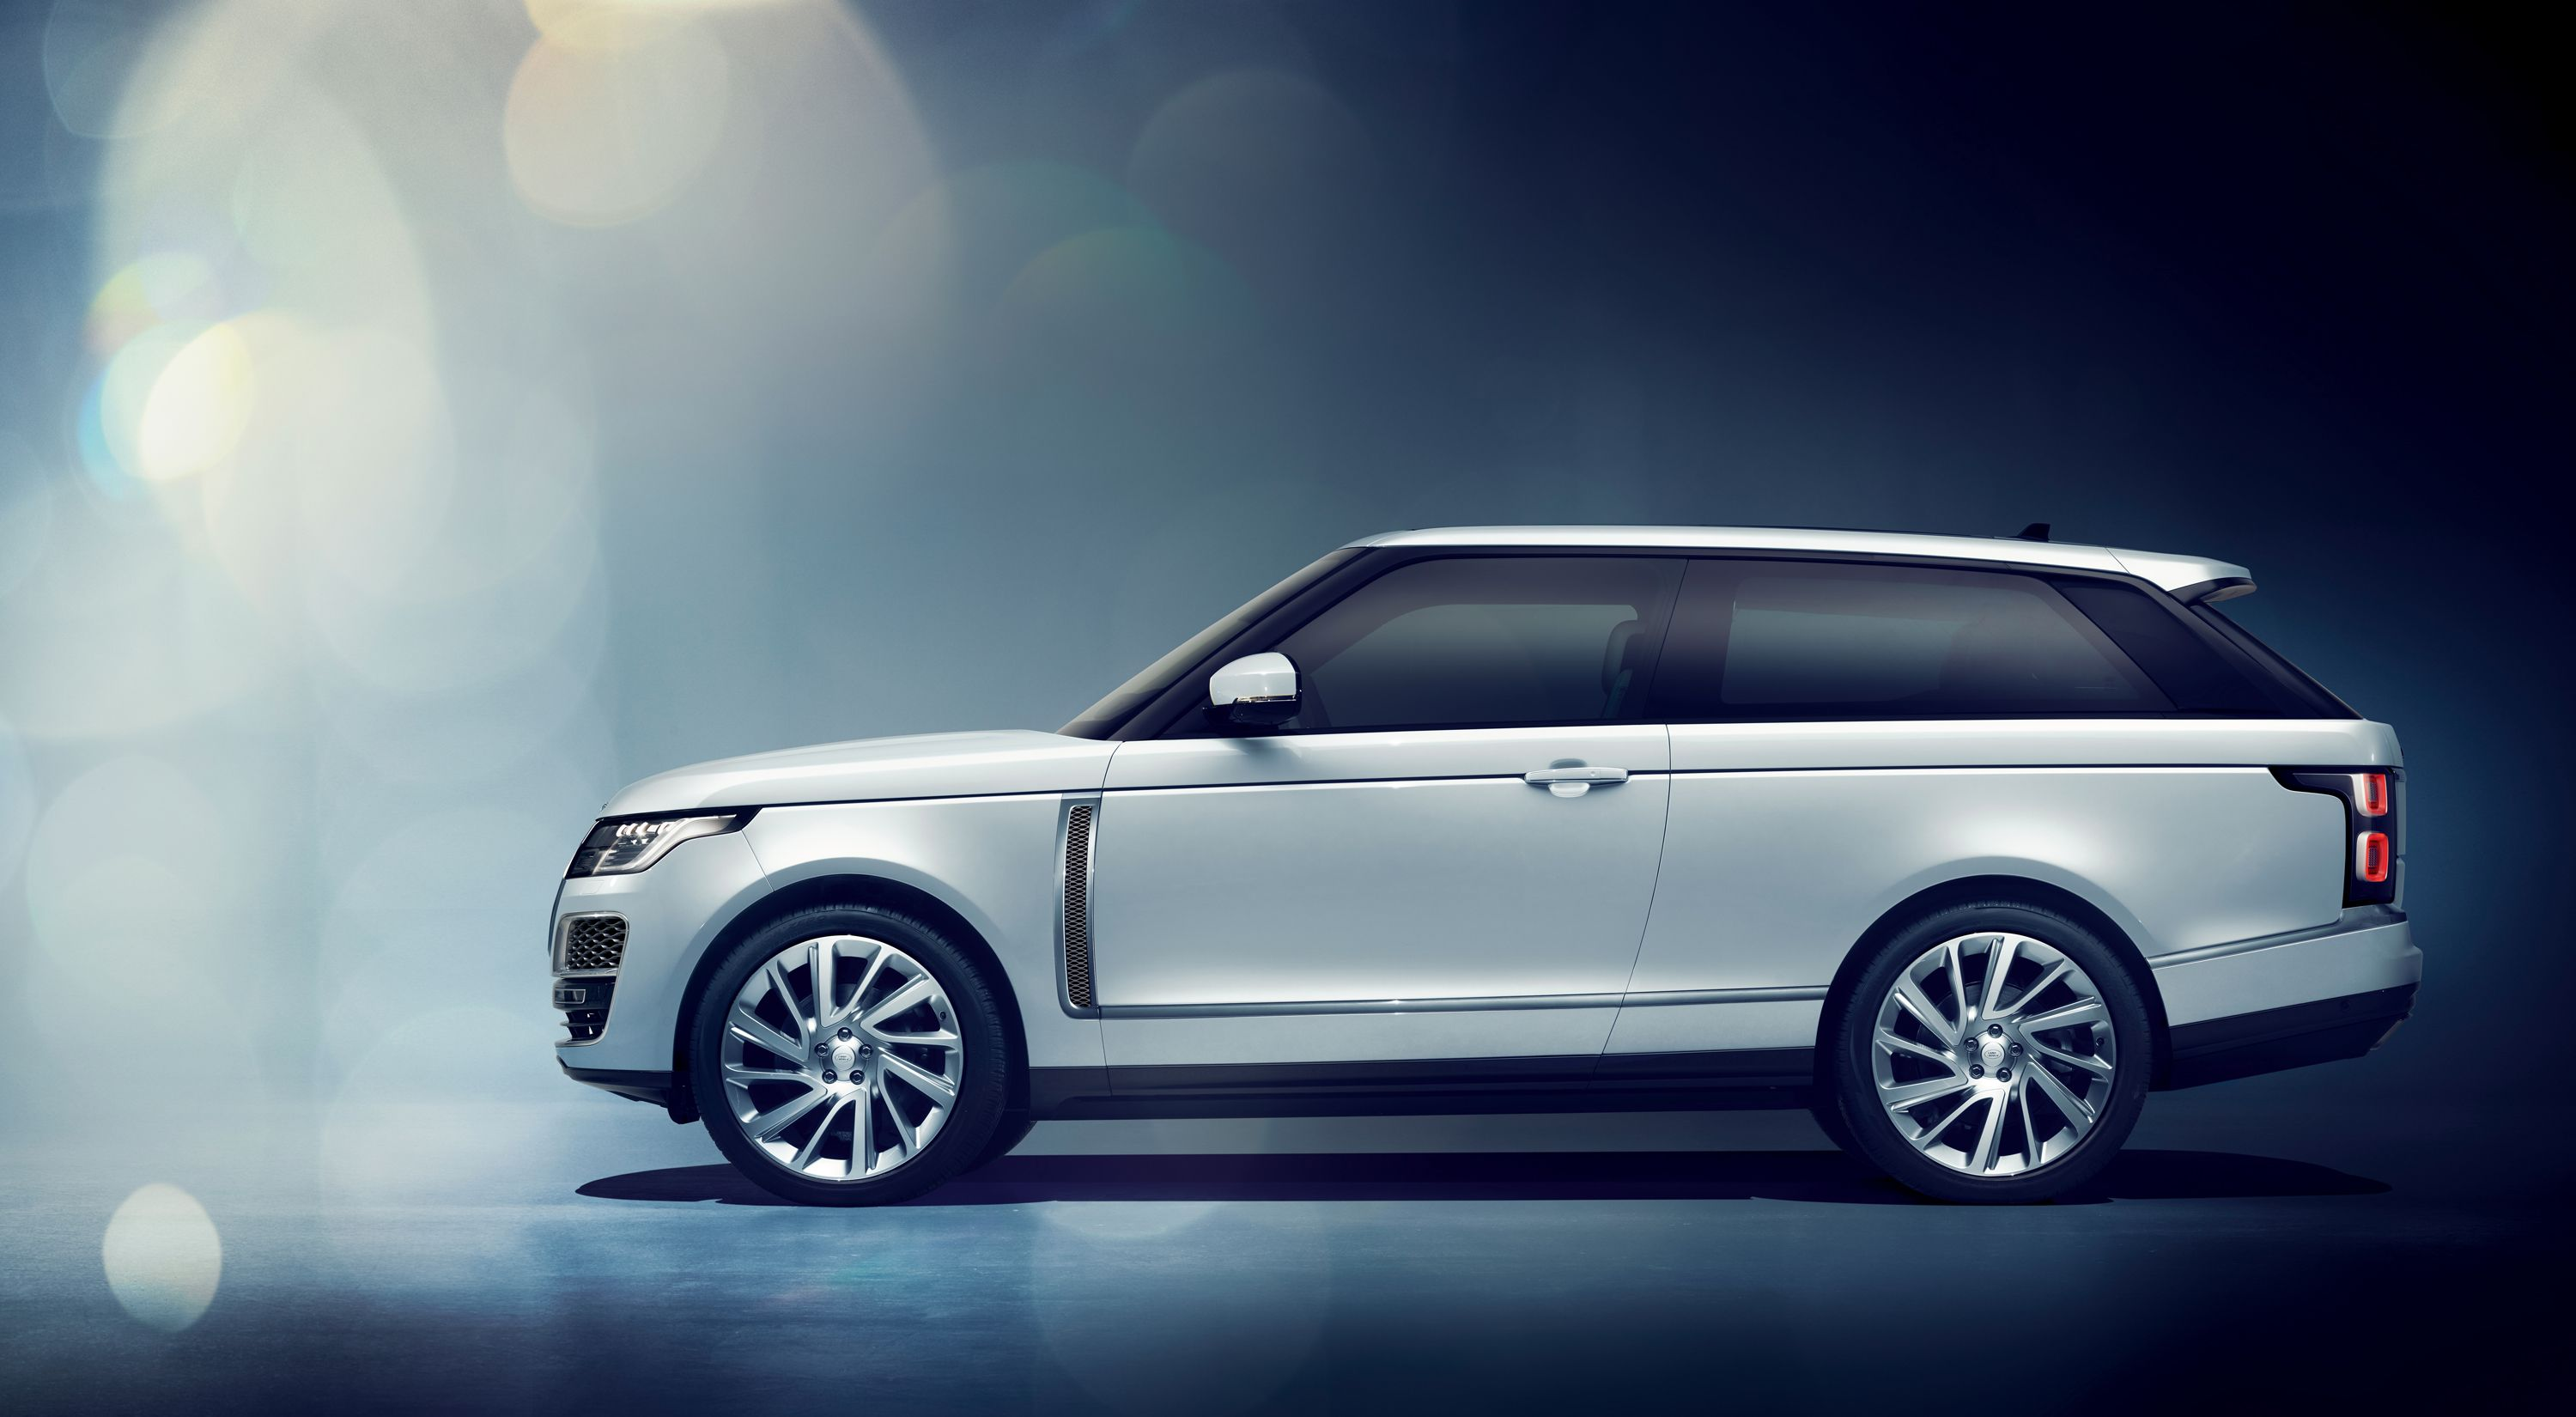 Range Rover SV Coupe Is the Pinnacle of Two-Door Land Rovers